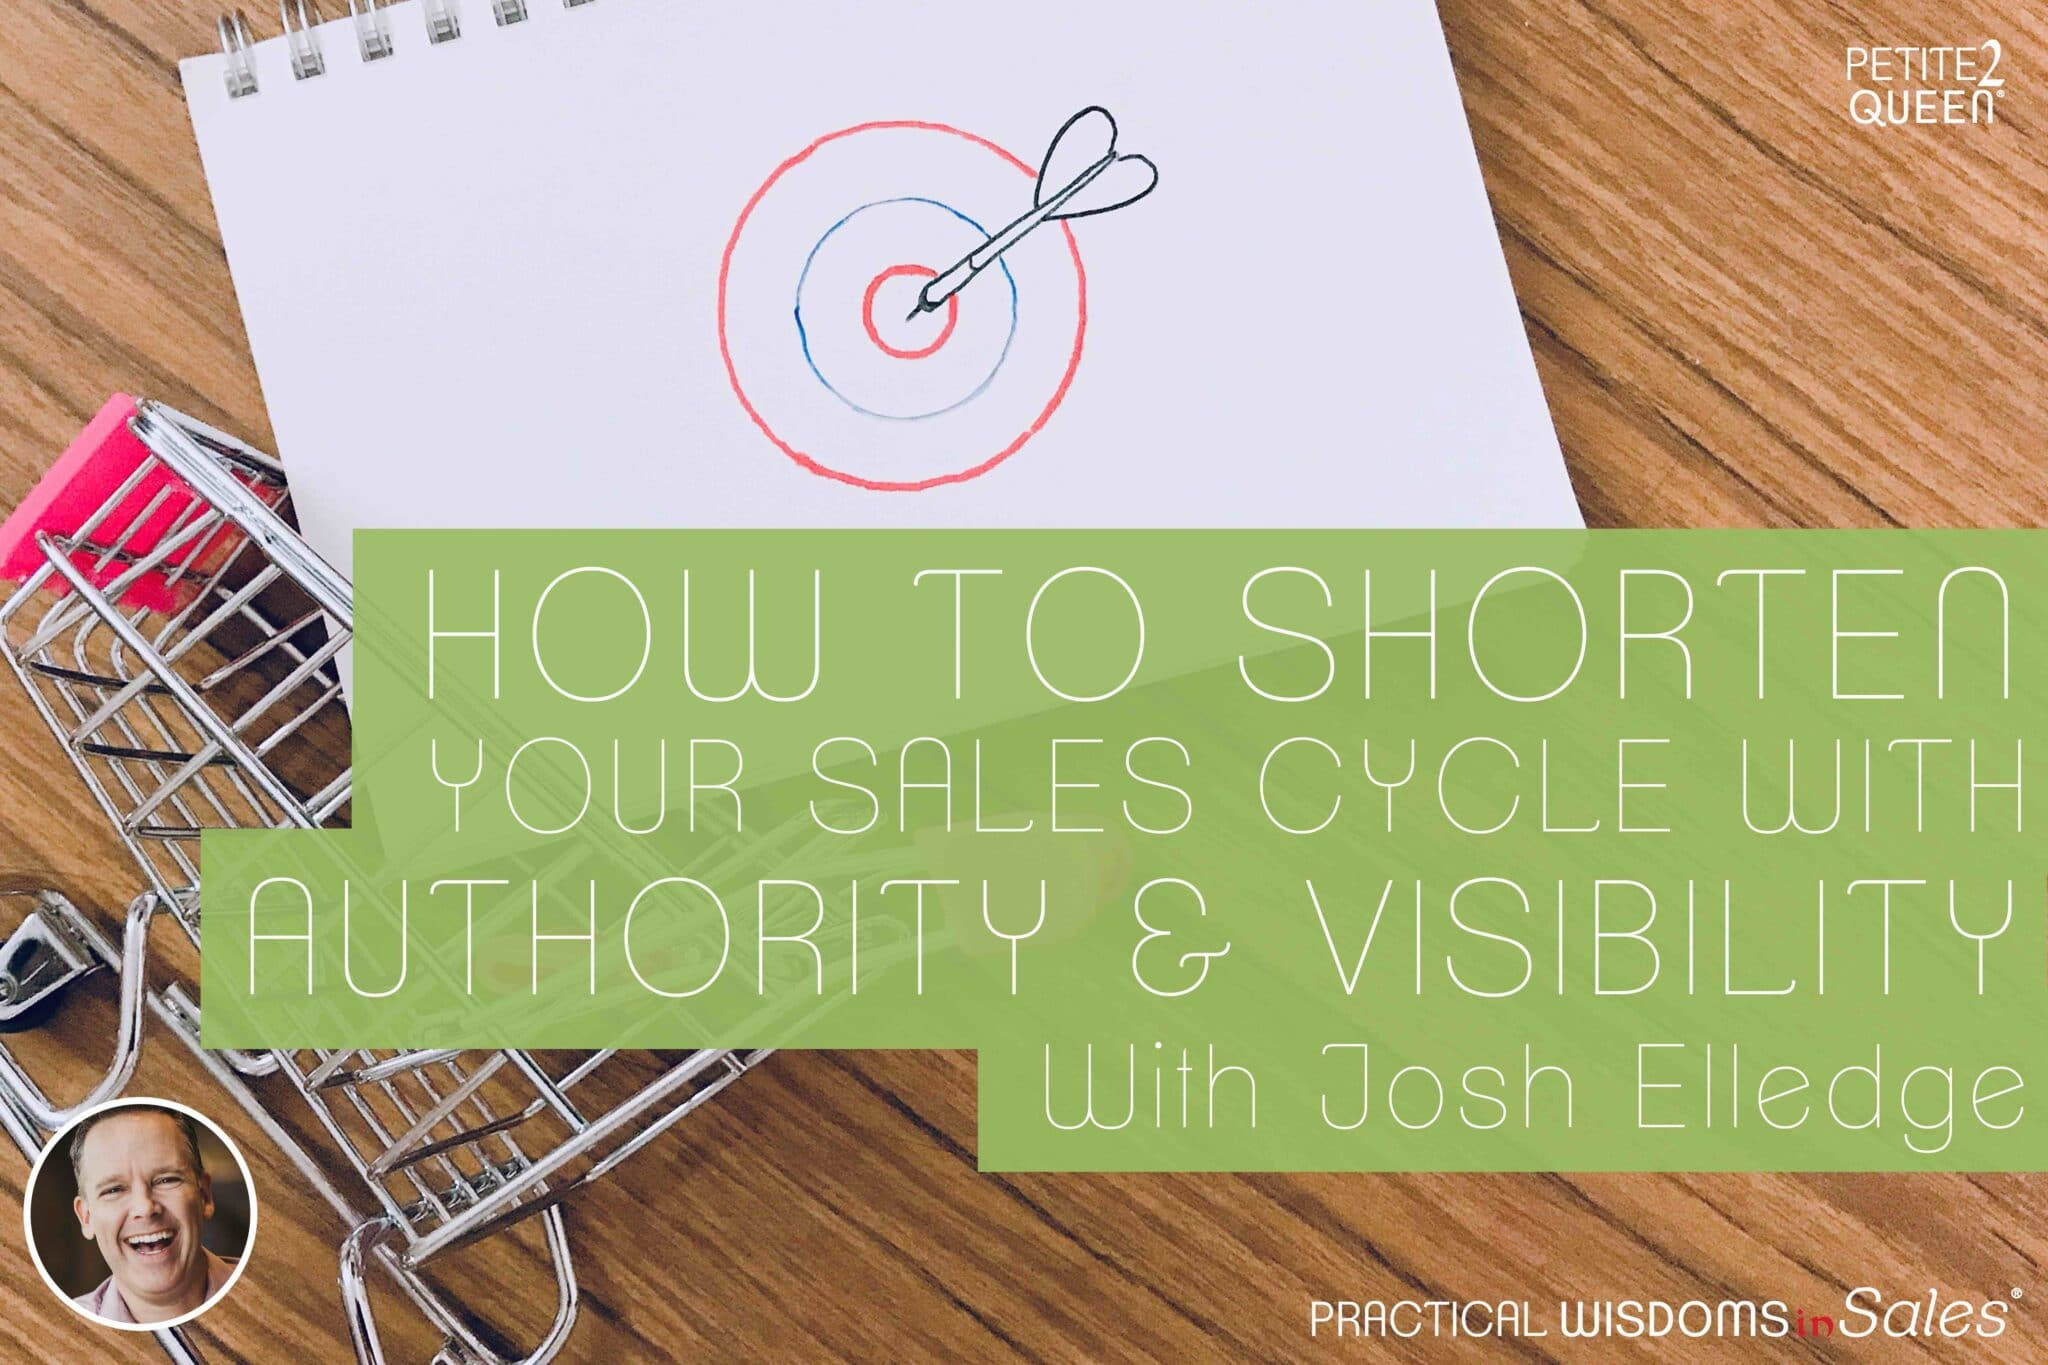 How to Shorten Your Sales Cycle with Authority and Visibility